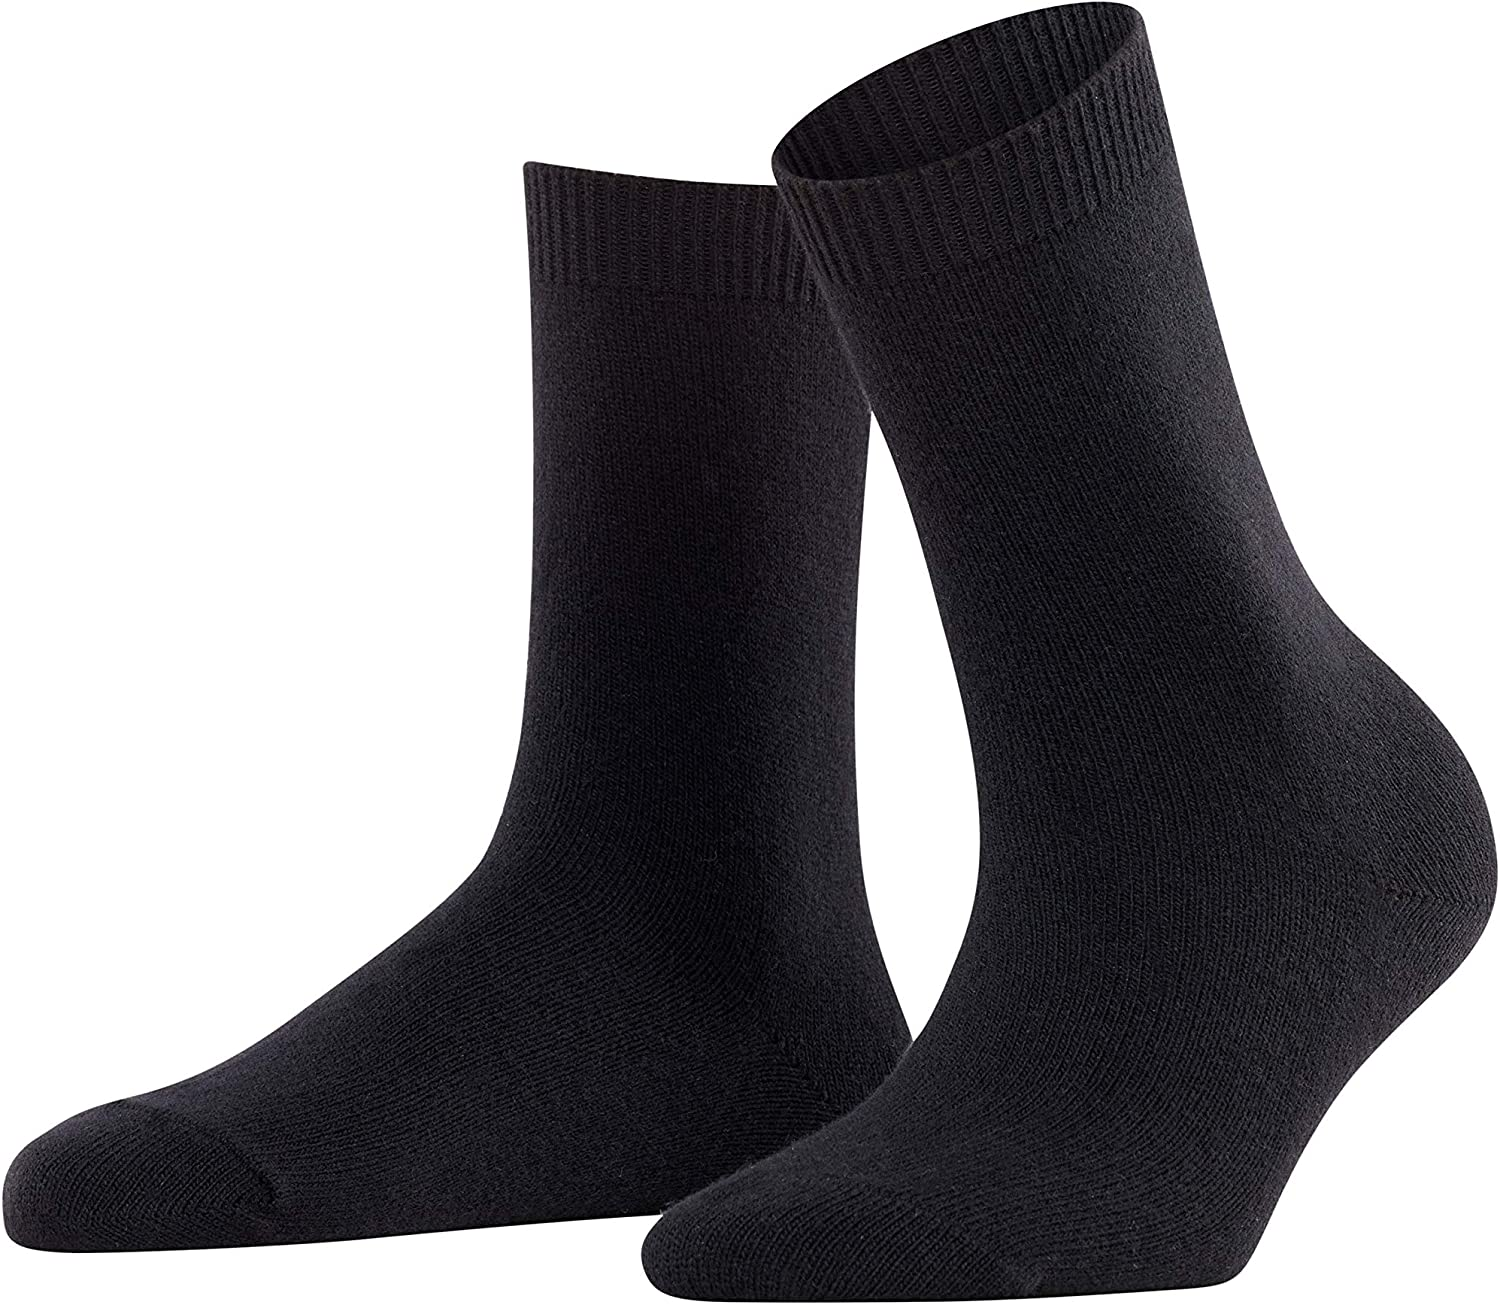 FALKE Womens Cosy Wool Casual Sock - Merino Wool/Cashmere Blend, Multiple Colors, US sizes 5 to 10.5, 1 Pair